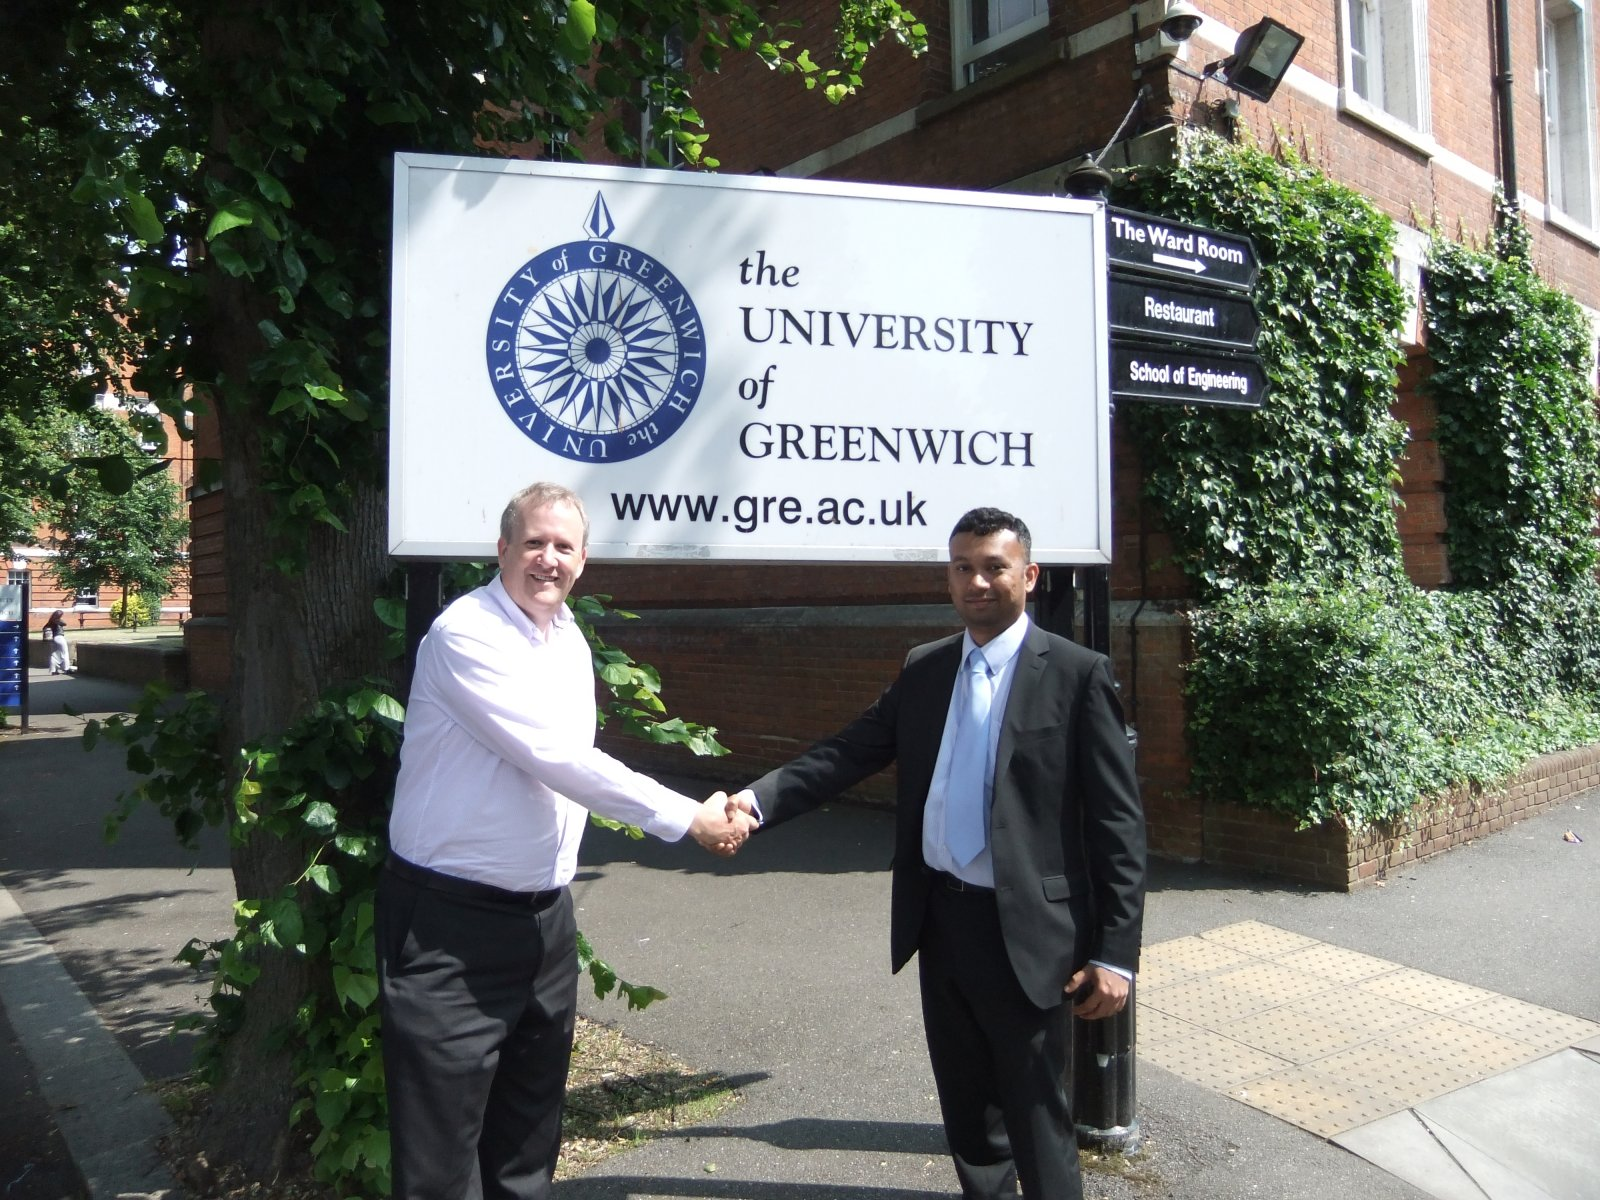 343-UniversityofGreenwich.jpg